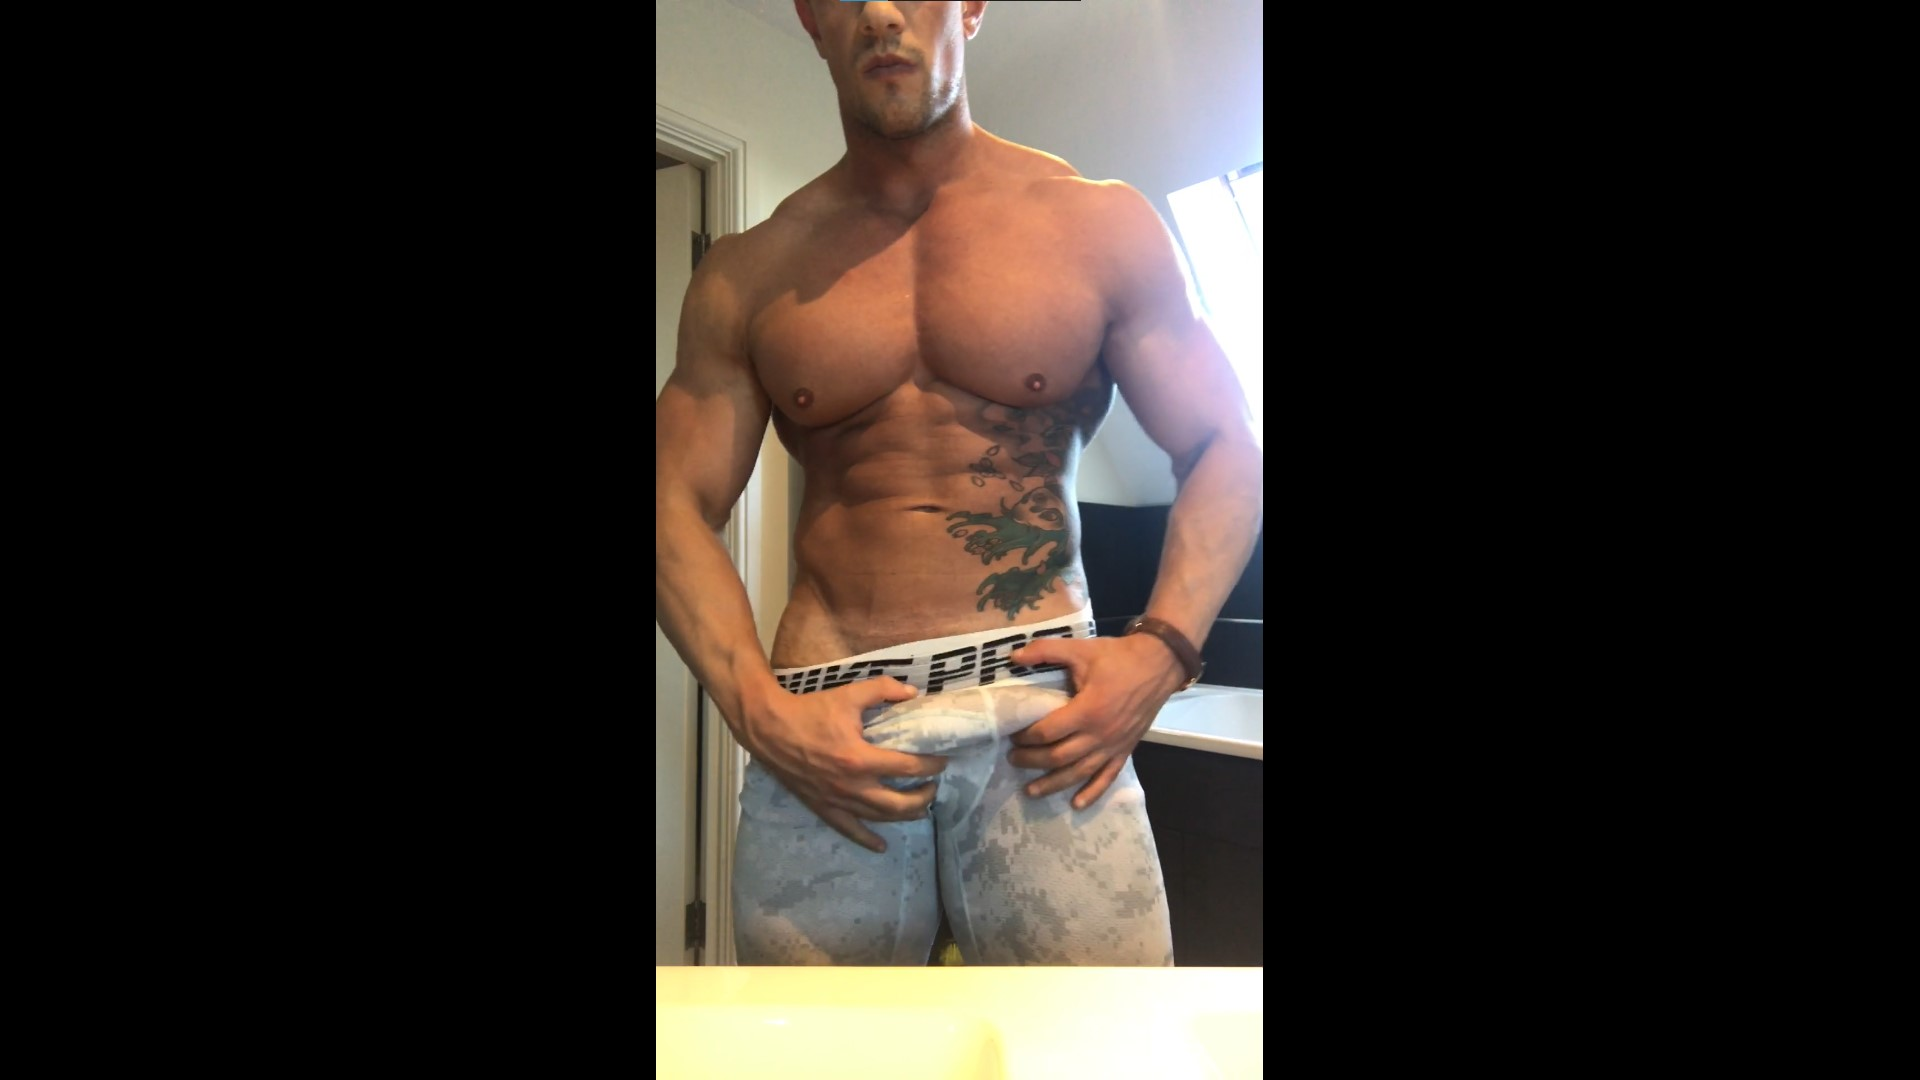 Showing off my muscles in my underwear - Charlie London